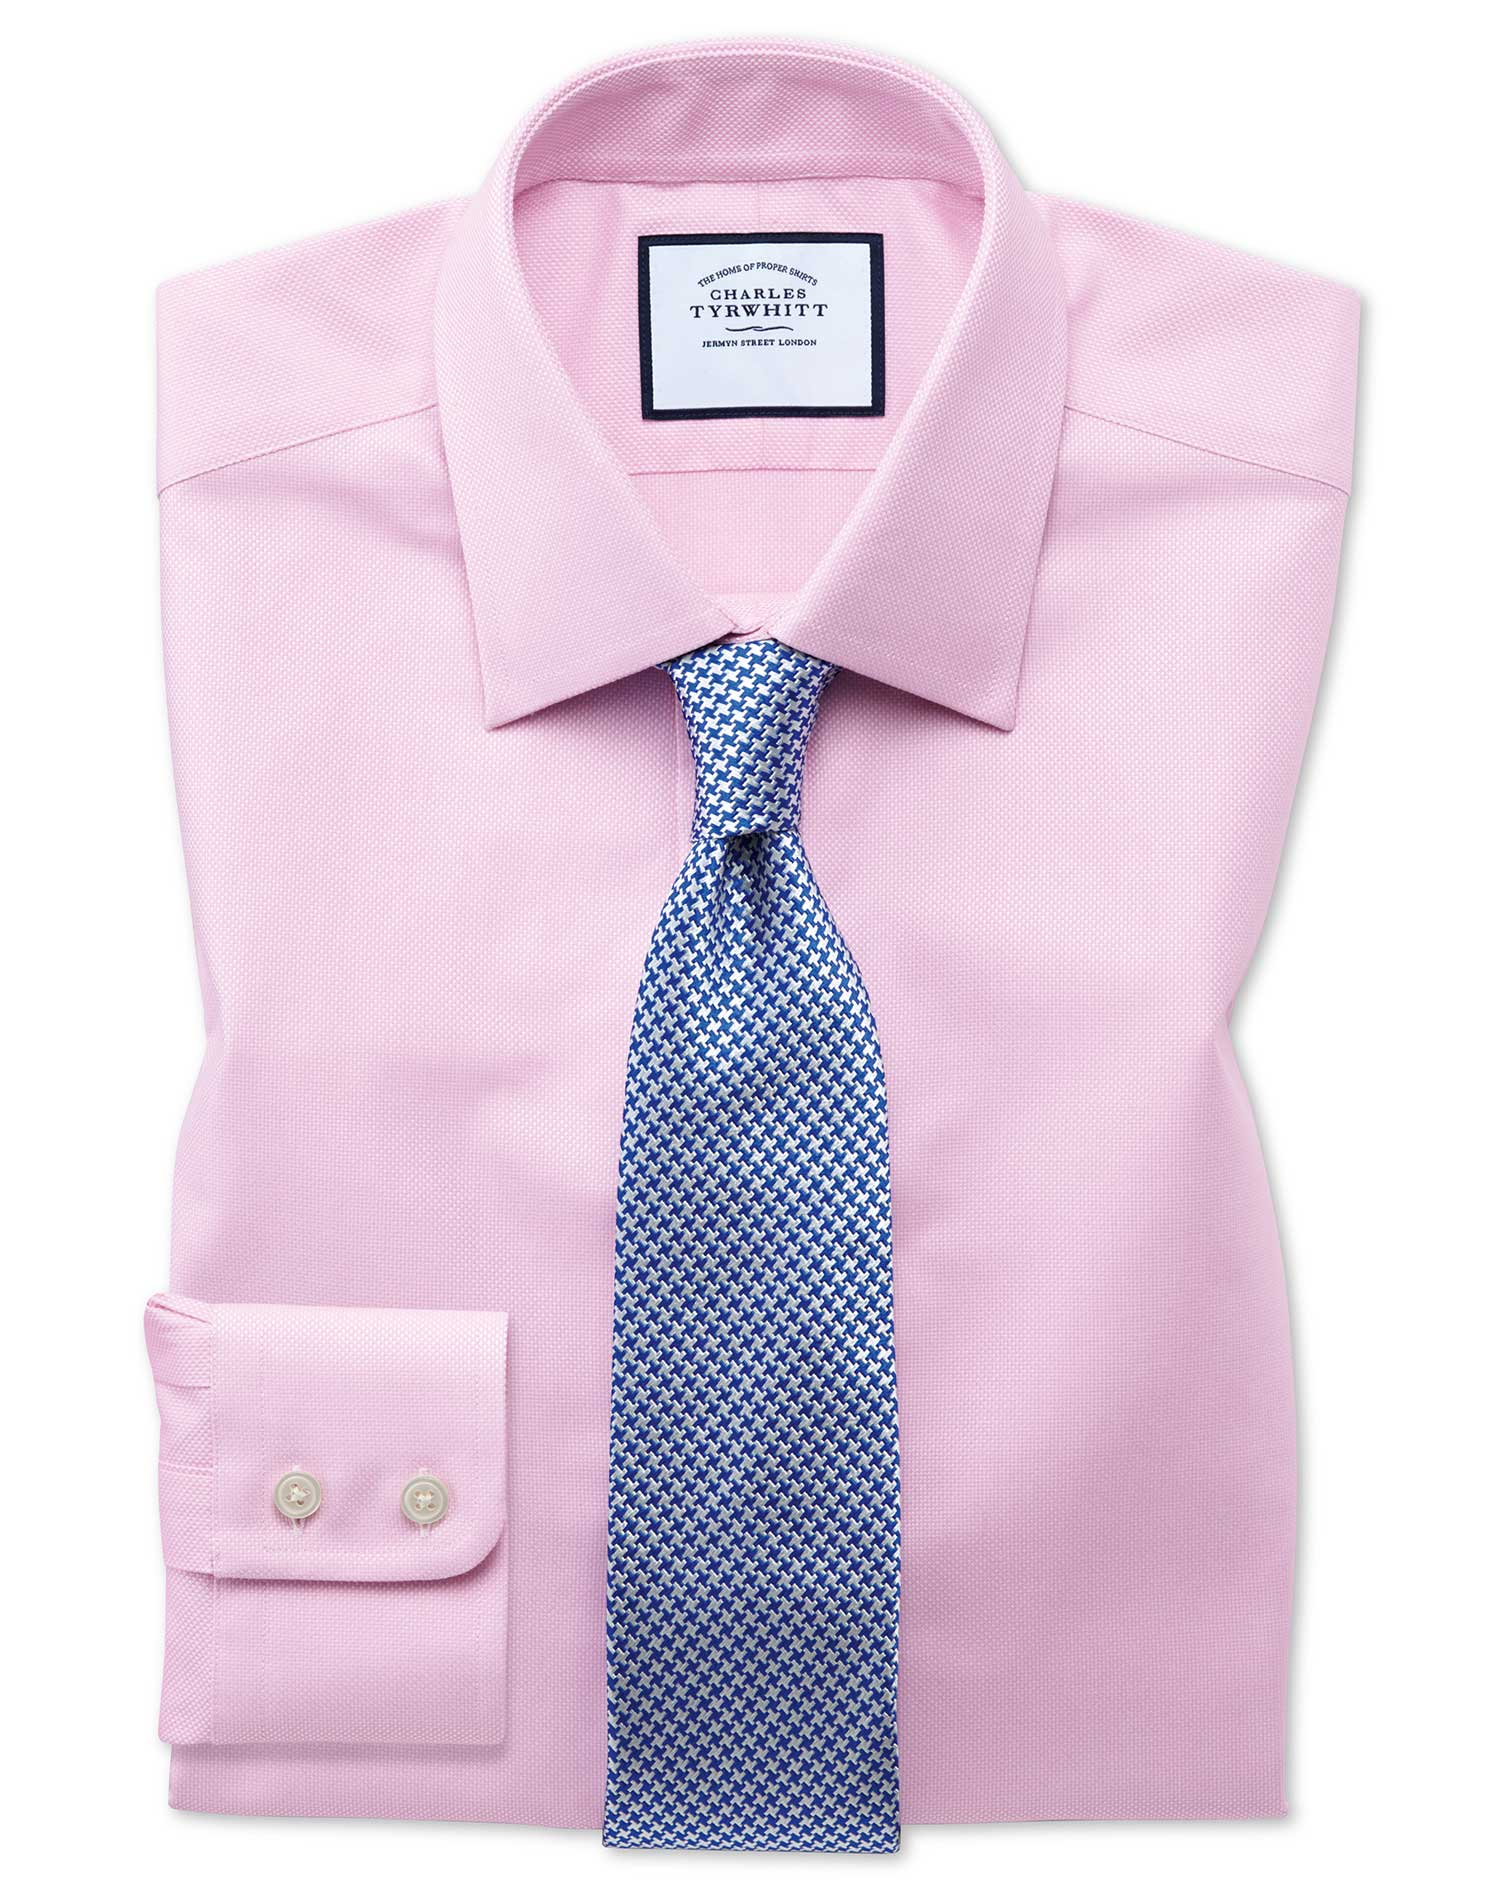 Slim Fit Egyptian Cotton Royal Oxford Pink Formal Shirt Double Cuff Size 16.5/33 by Charles Tyrwhitt